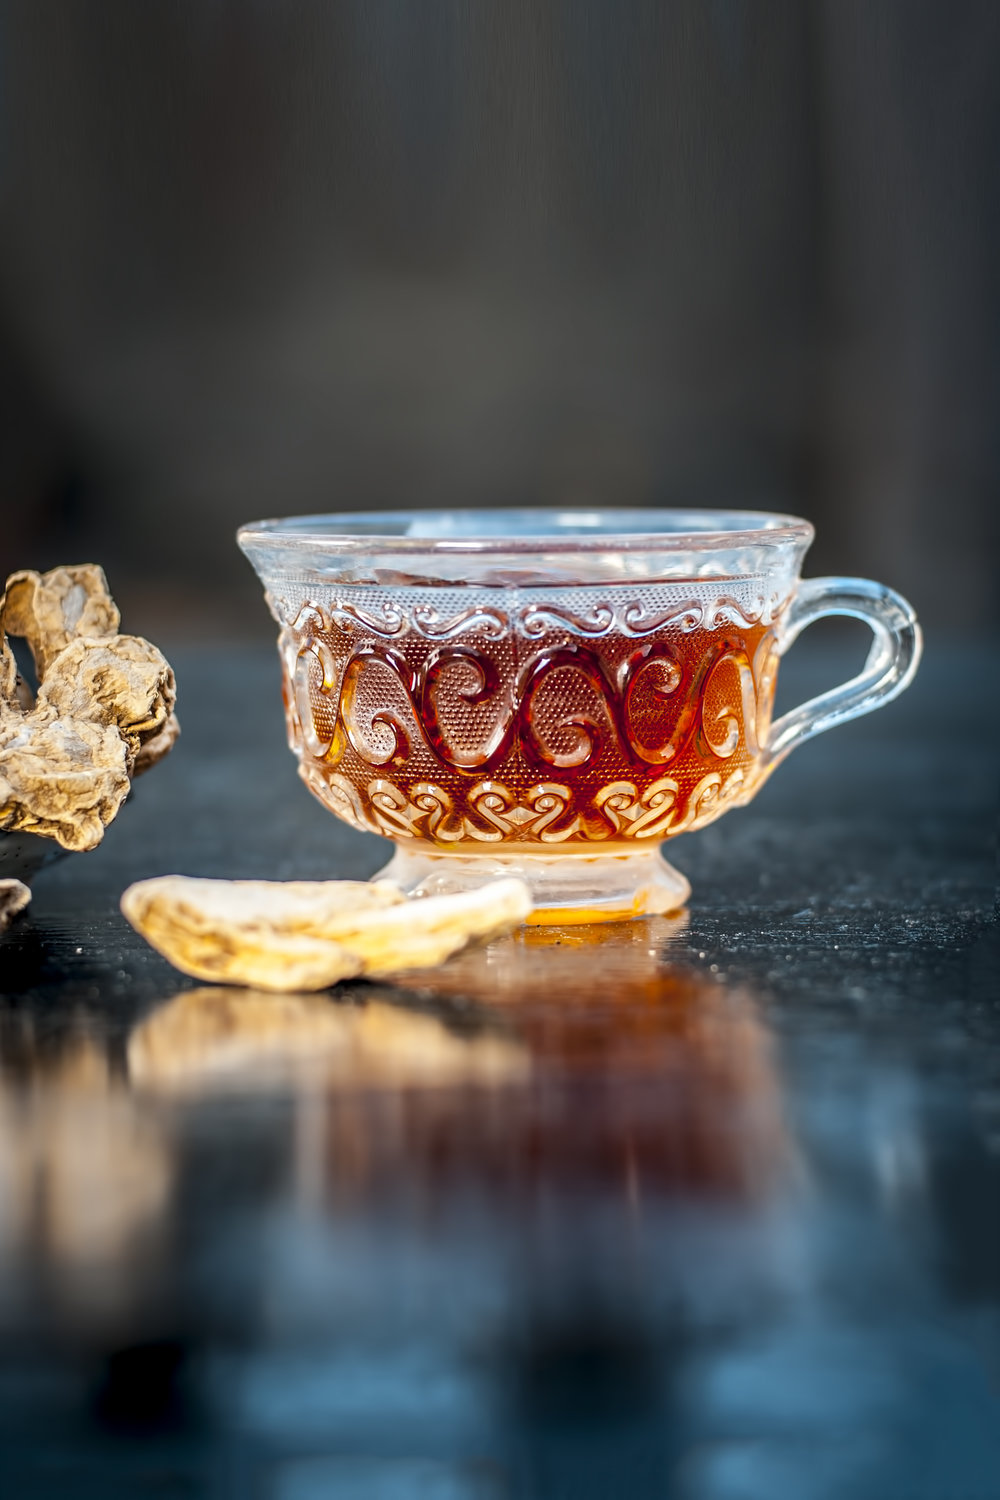 Beneficial tea of dried ginger or Zingiber officinale with benefits like help digestion, reduce nausea and help fight the flu and common cold in transparent cup with raw dried ginger.